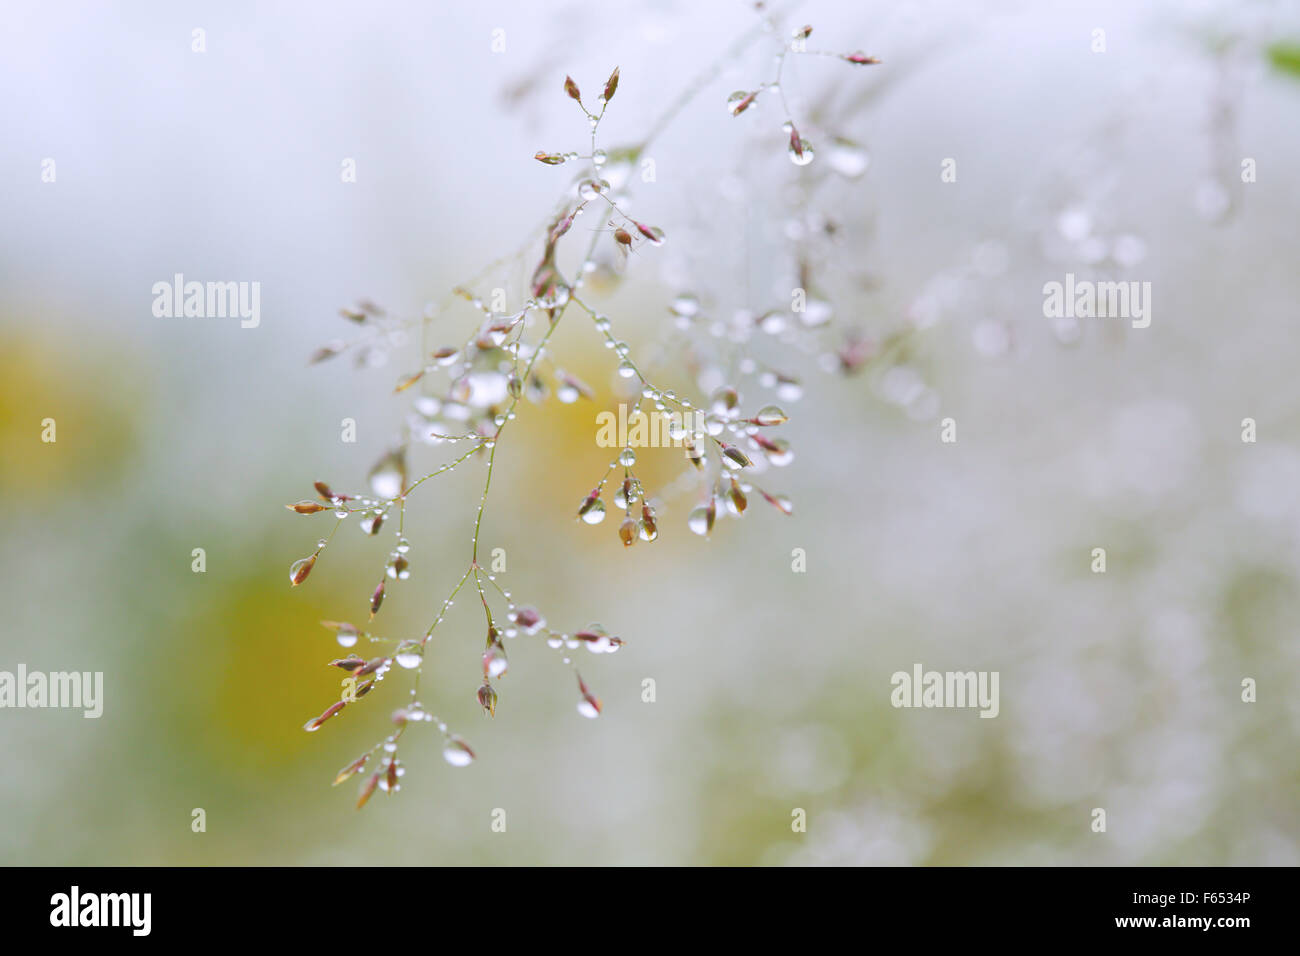 Dewdrops on meadow grass. - Stock Image